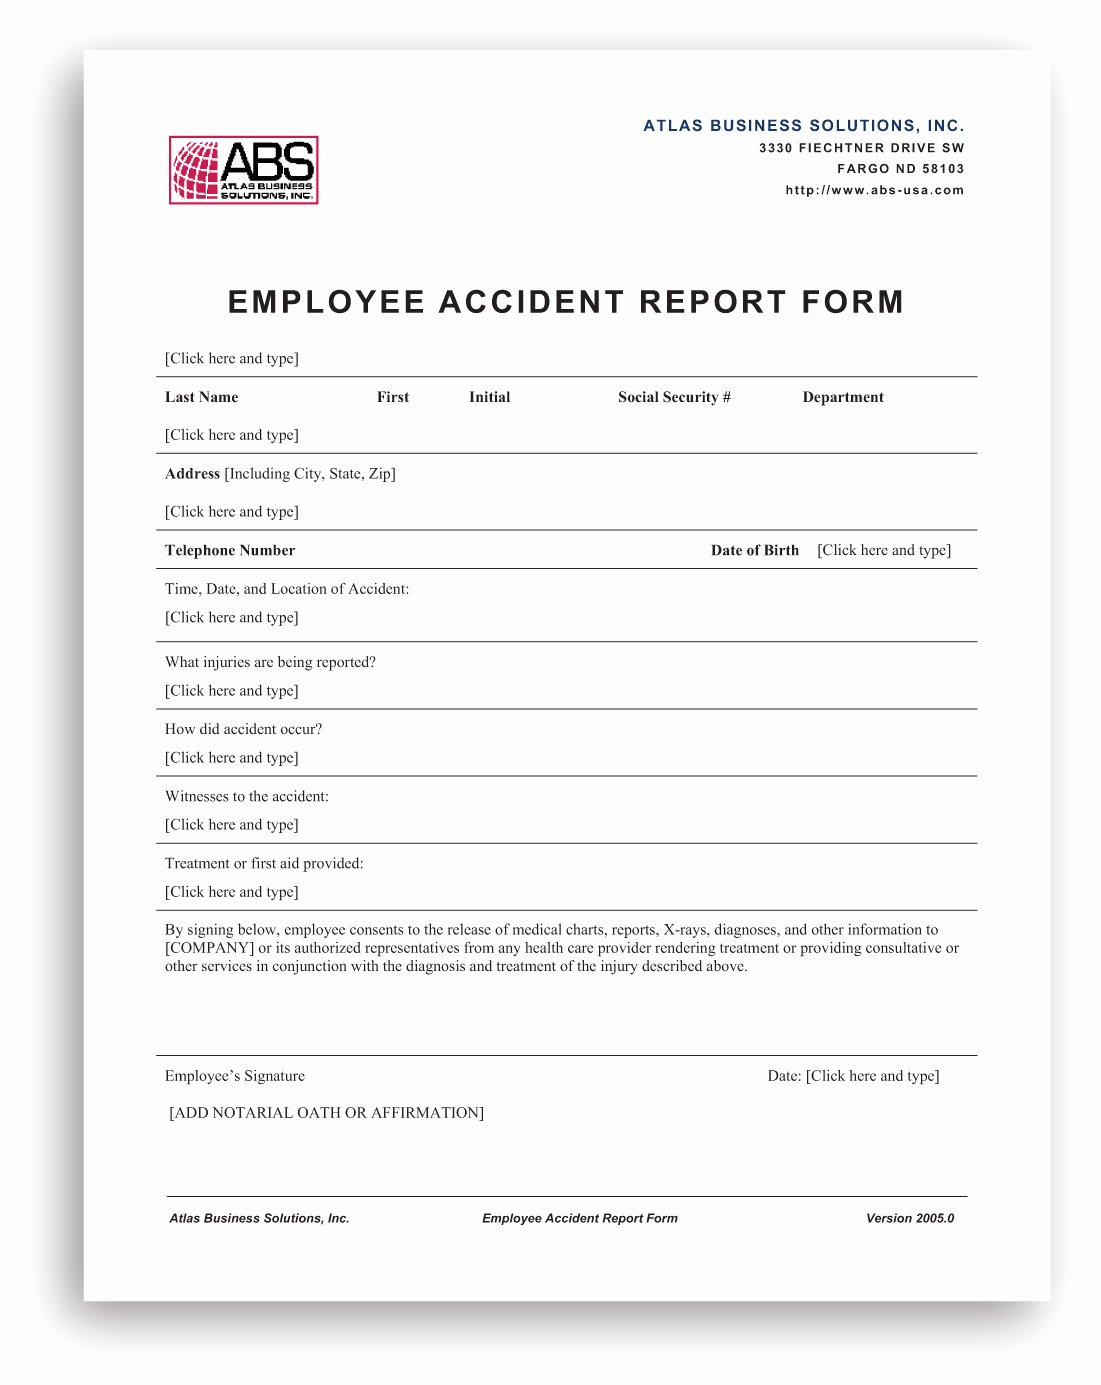 Human Resources Documents Template Inspirational Employee Handbooks with Pany Policies In Hr software